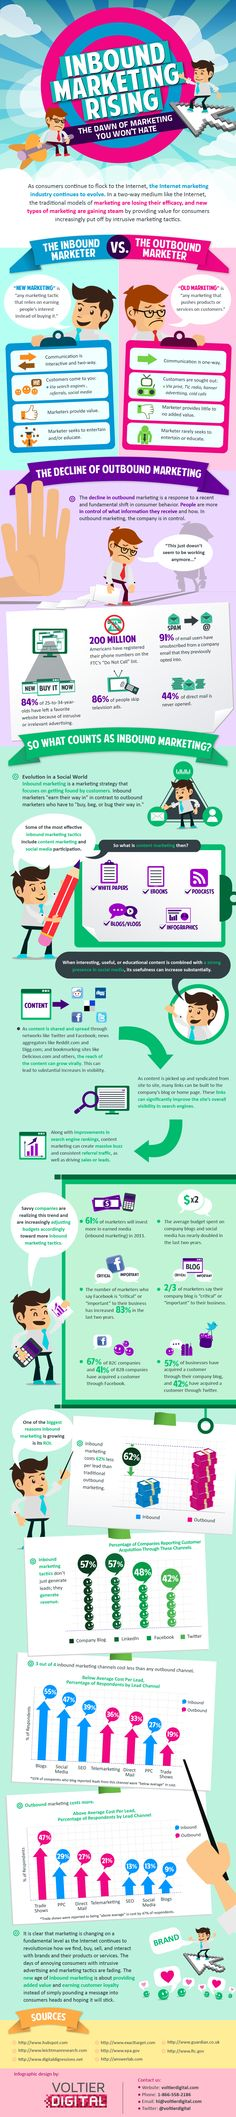 Inbound Marketing vs. Outbound Marketing. Social Media --> goo.gl/Rgu7t